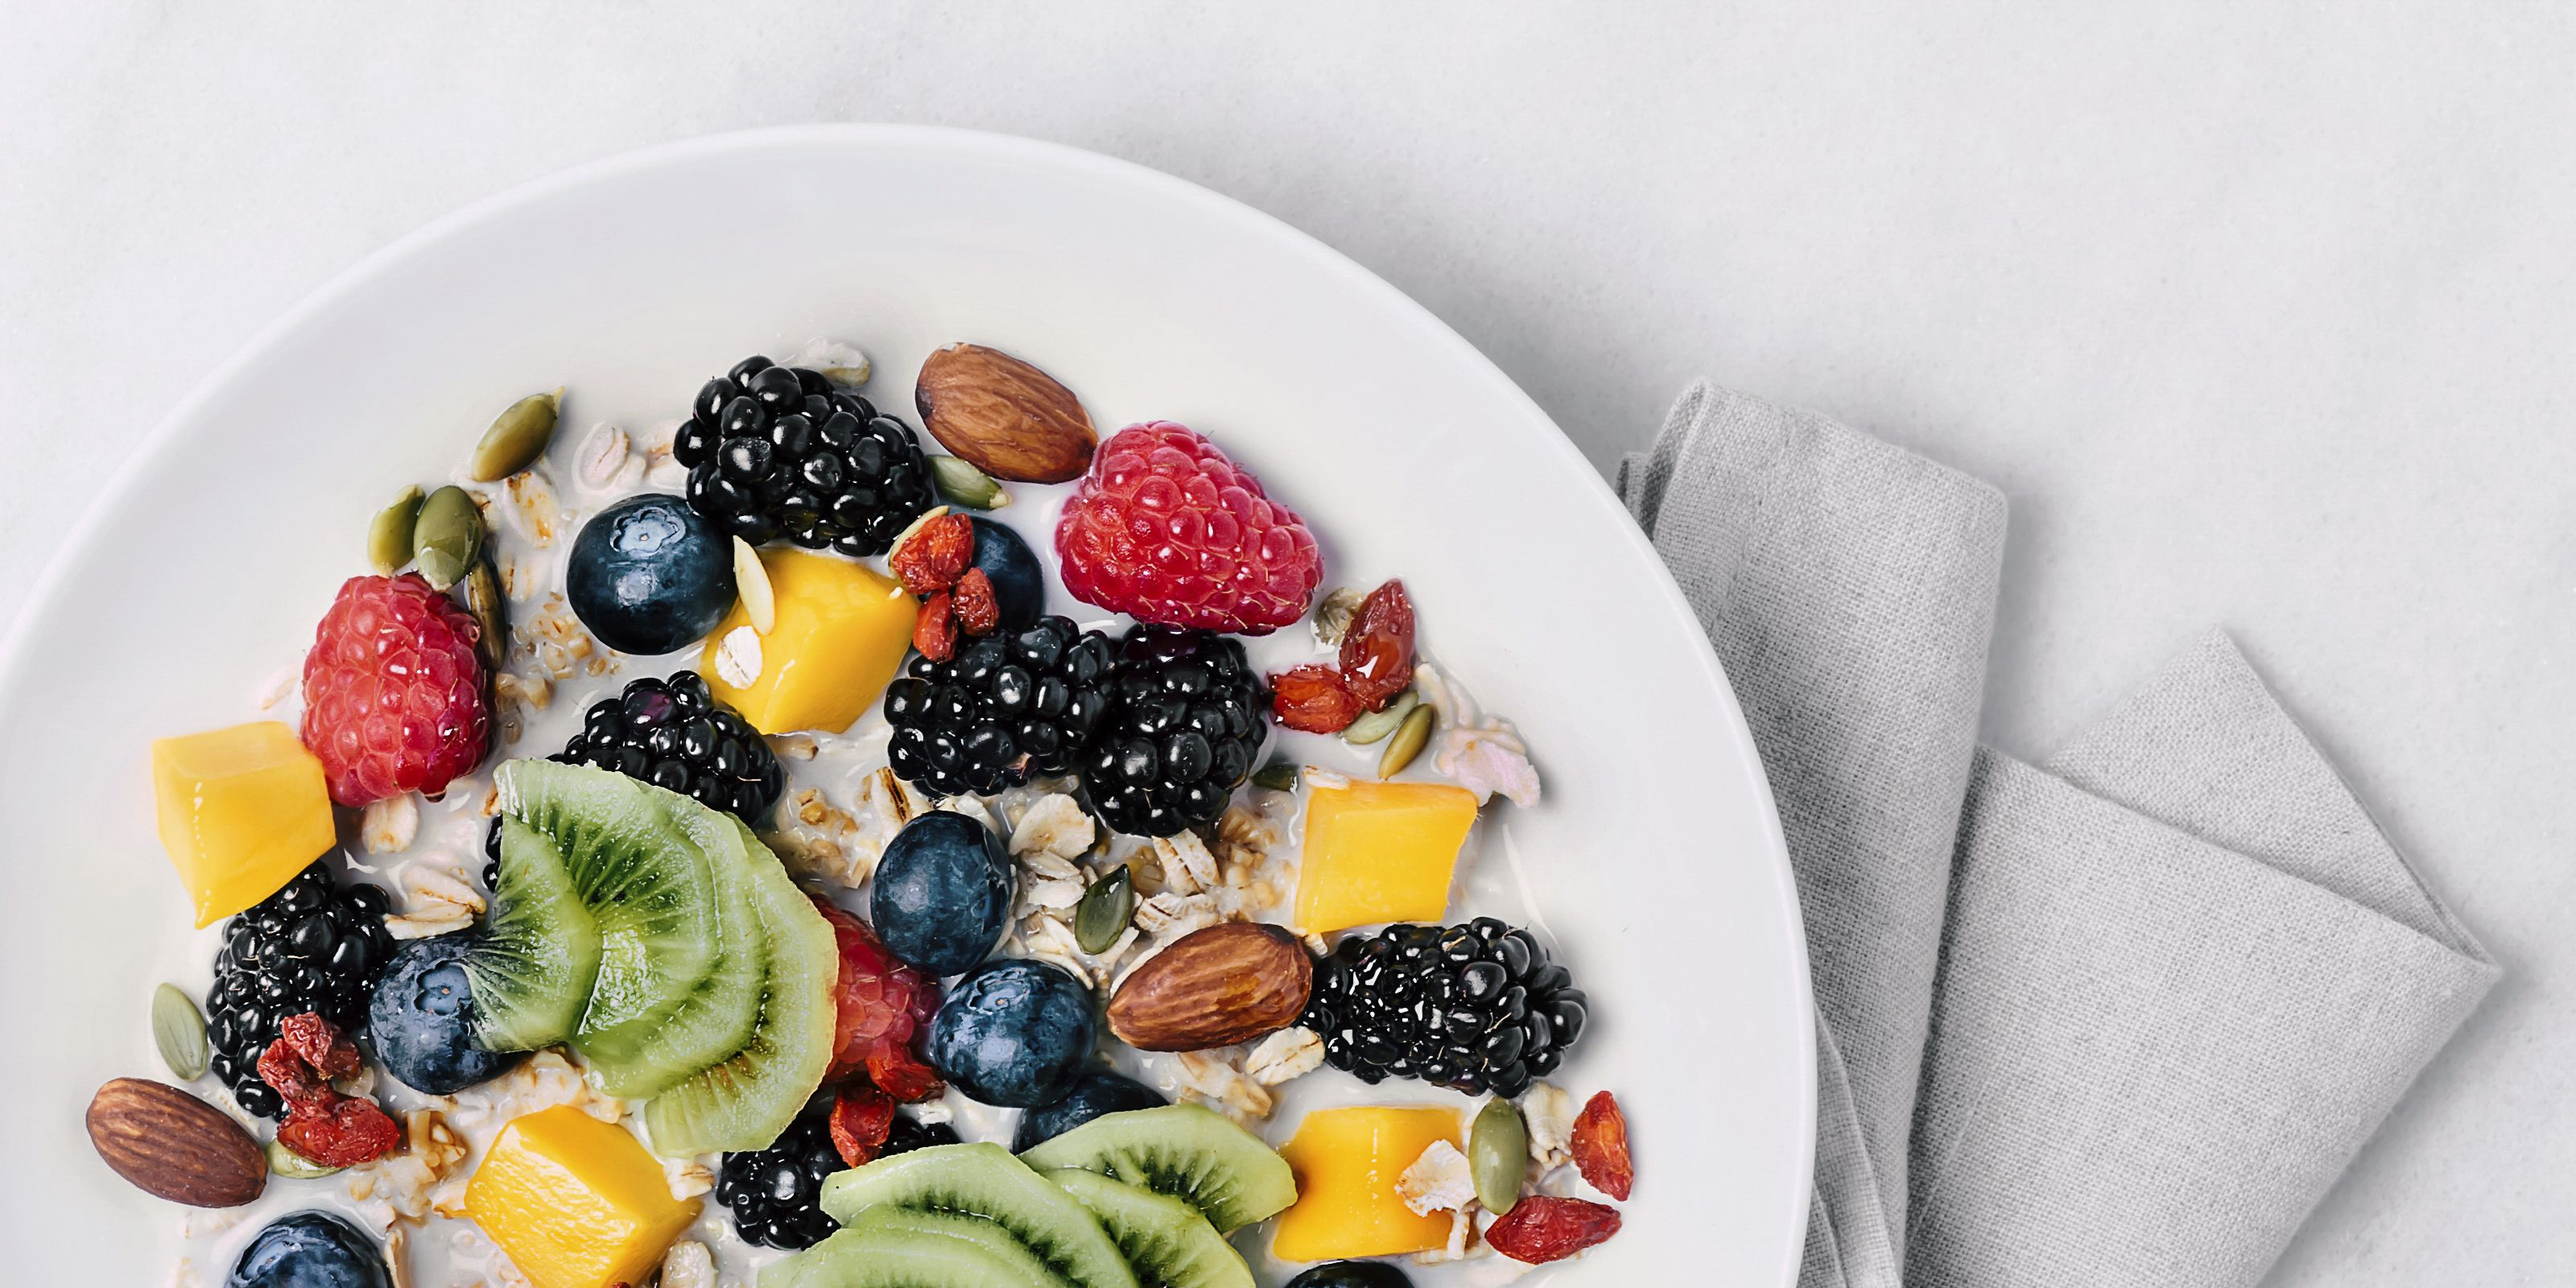 Granola with milk and a variety of fresh and dried fruits